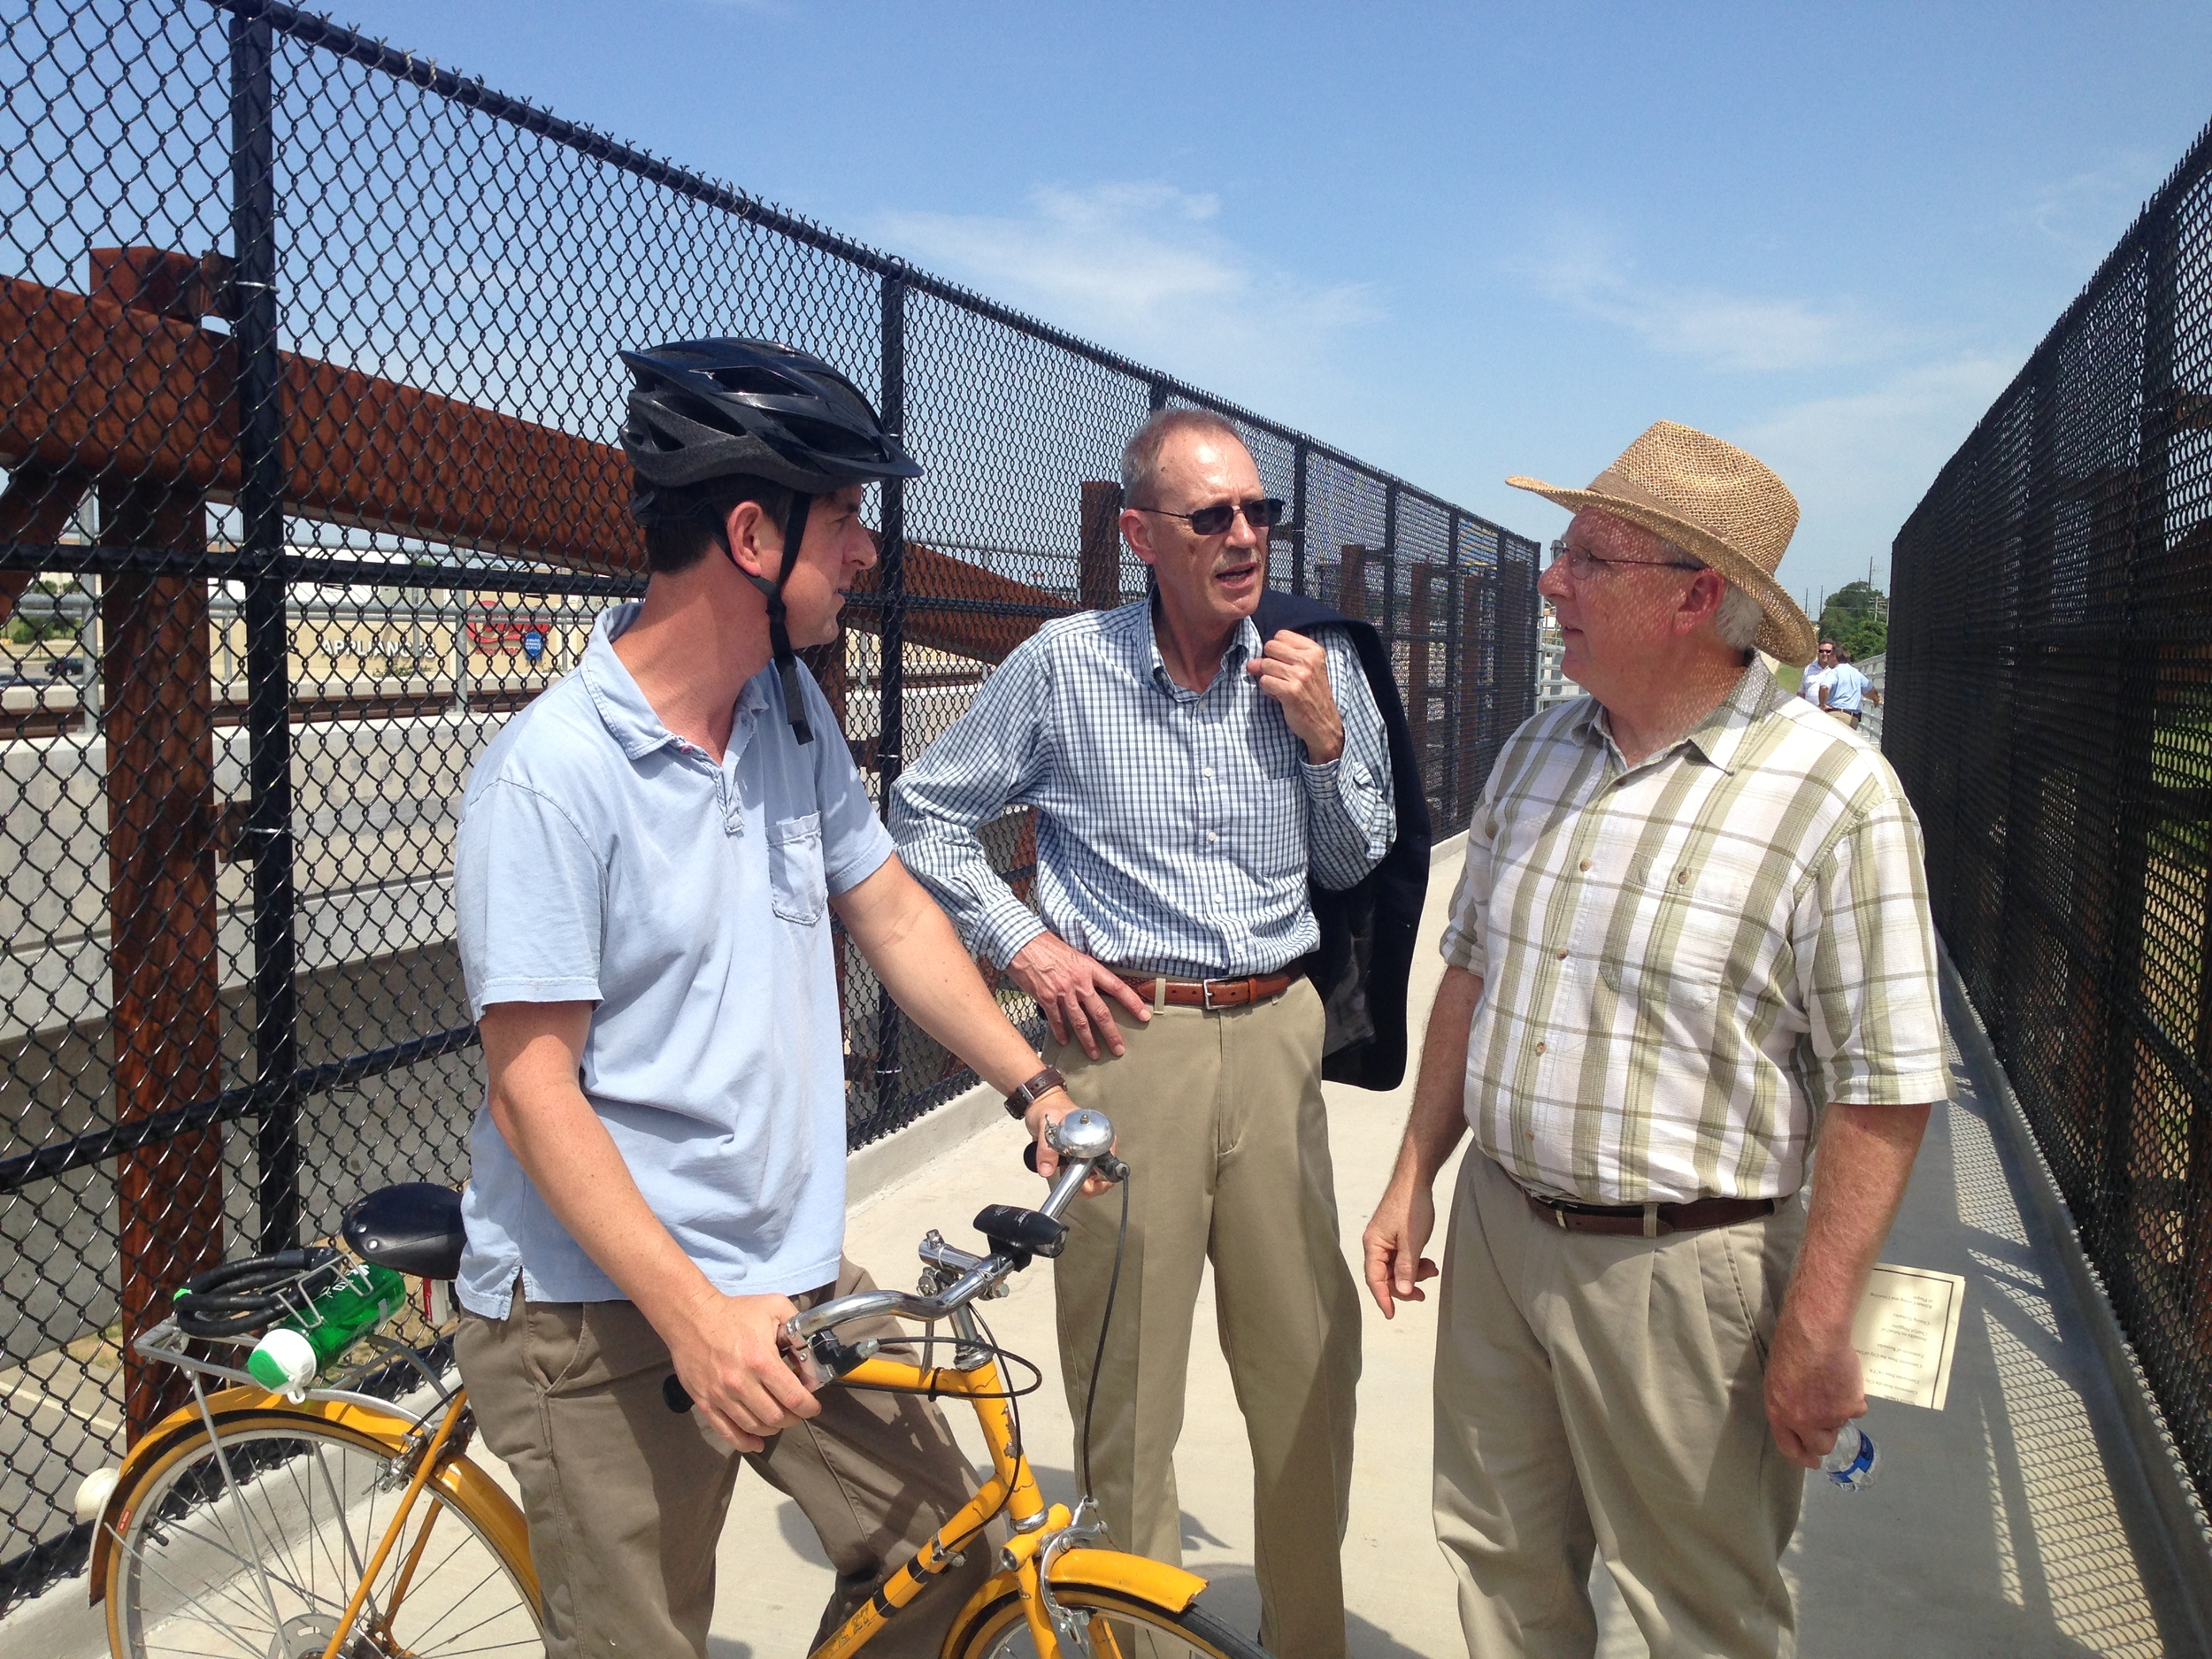 A few of our favorite city councilmen chatting on the new bridge